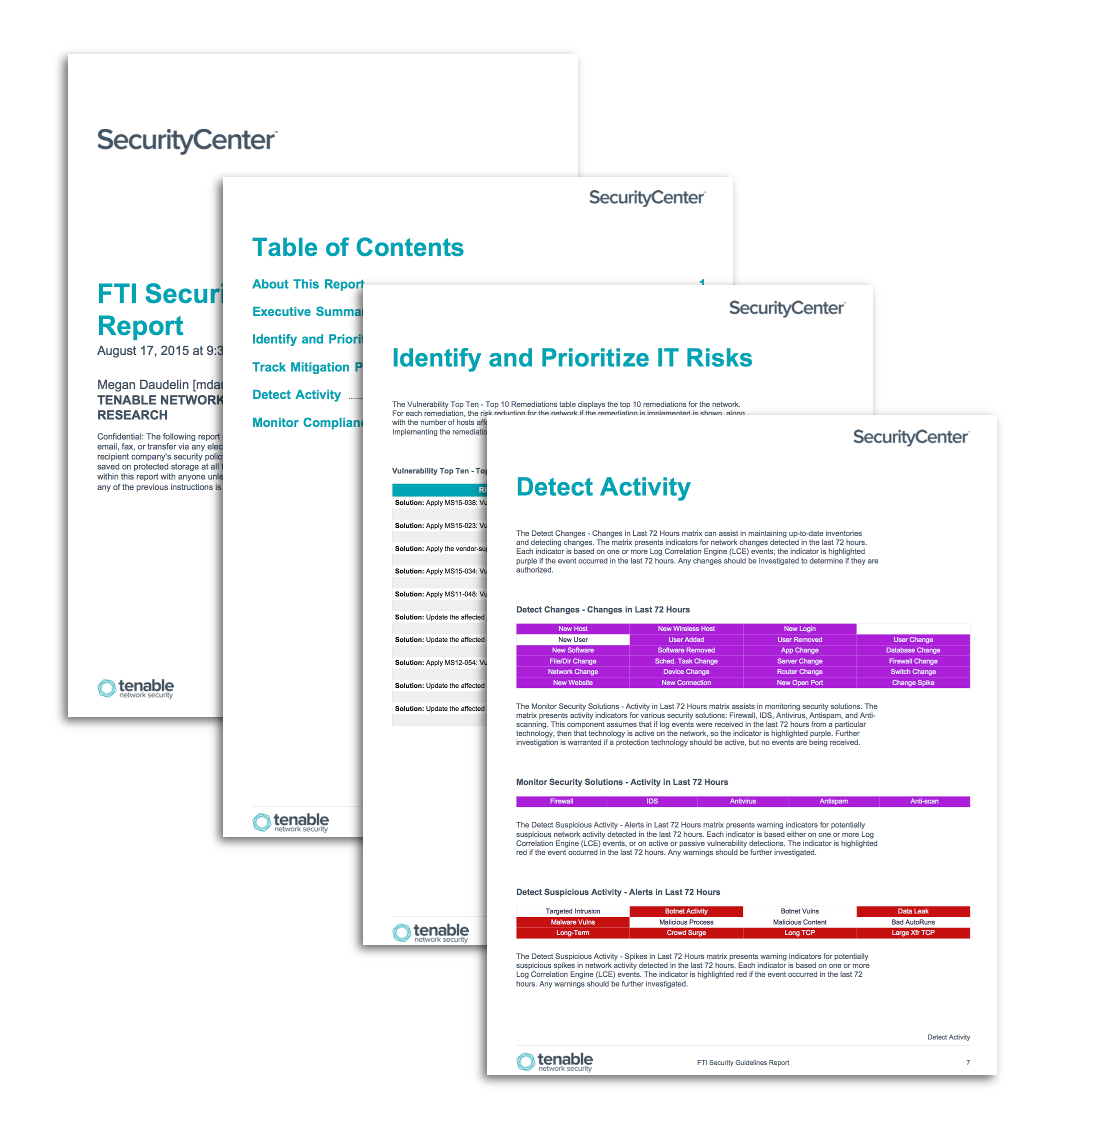 FTI Security Guidelines Report